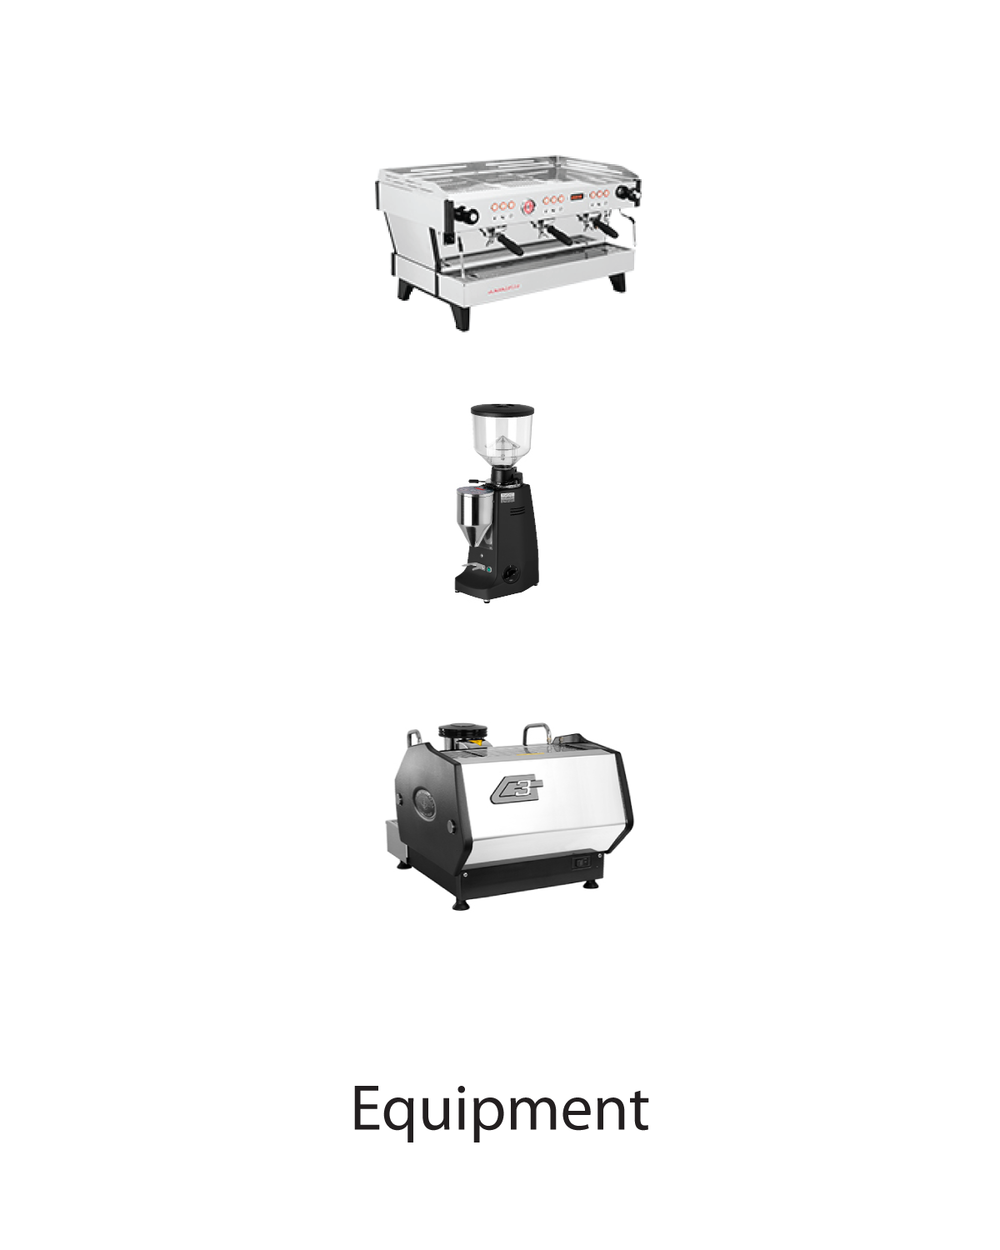 Shop for New and Used Equipment